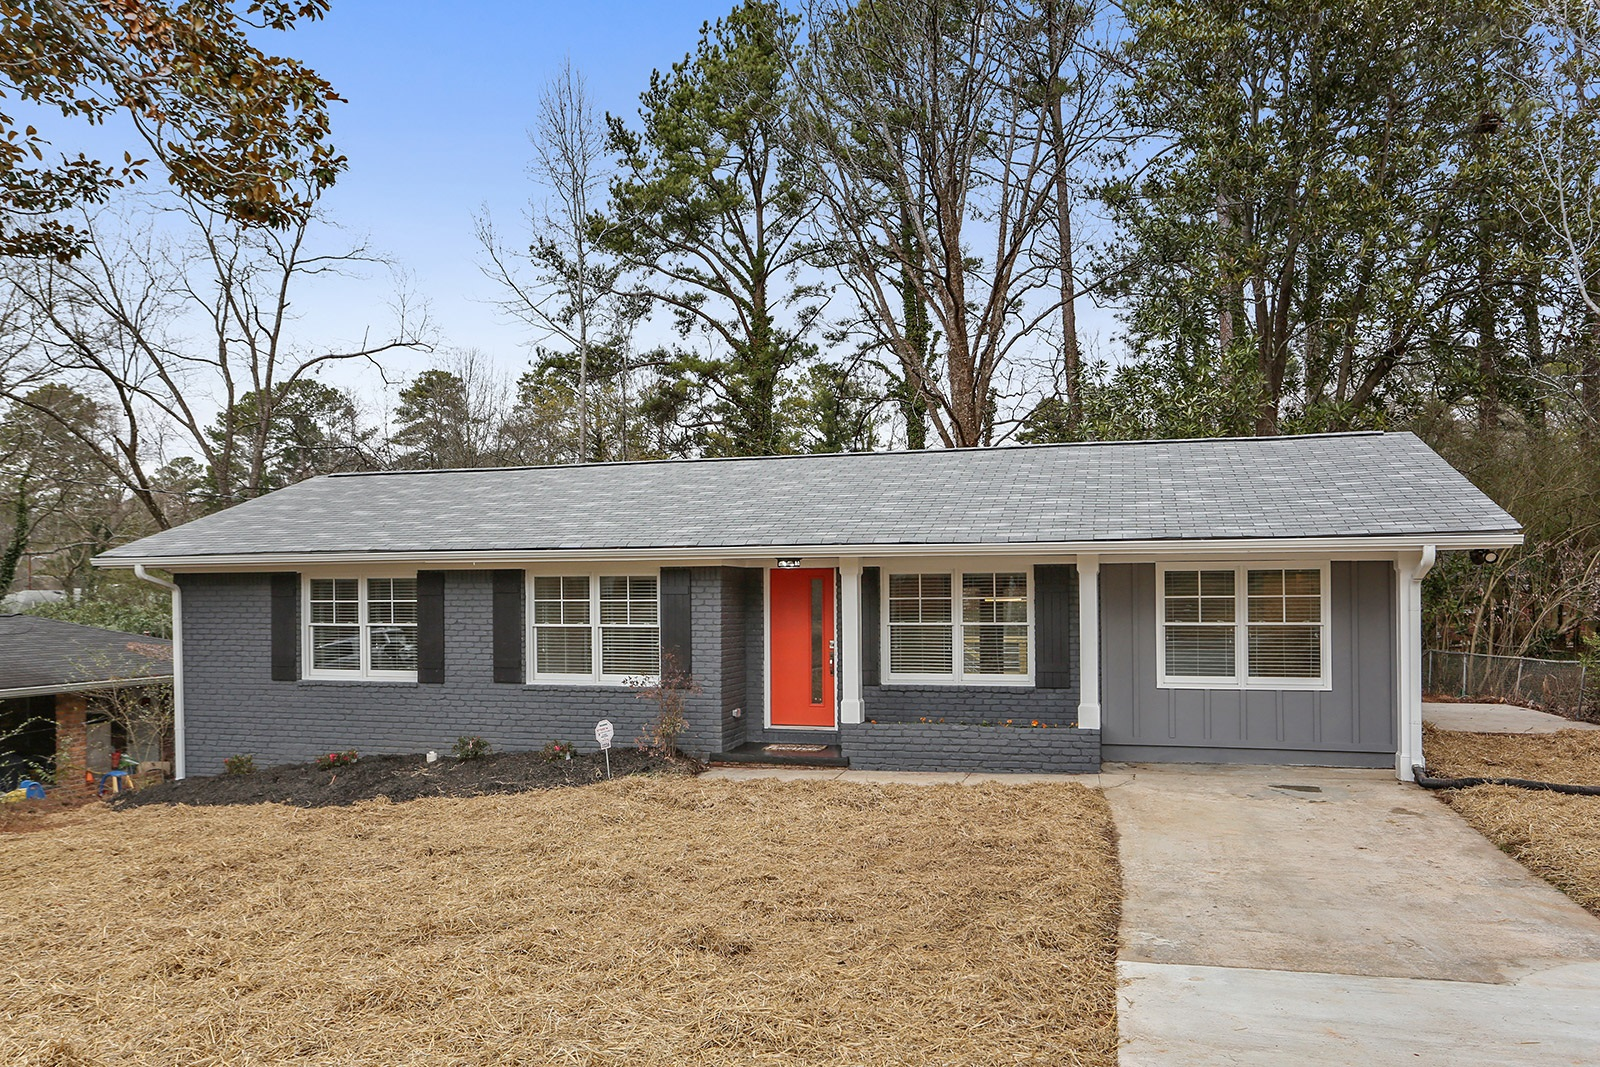 Mid Century Decatur Home For Rent Meadowbrook acres belvedere park Solid Source Realty Kevin Polite